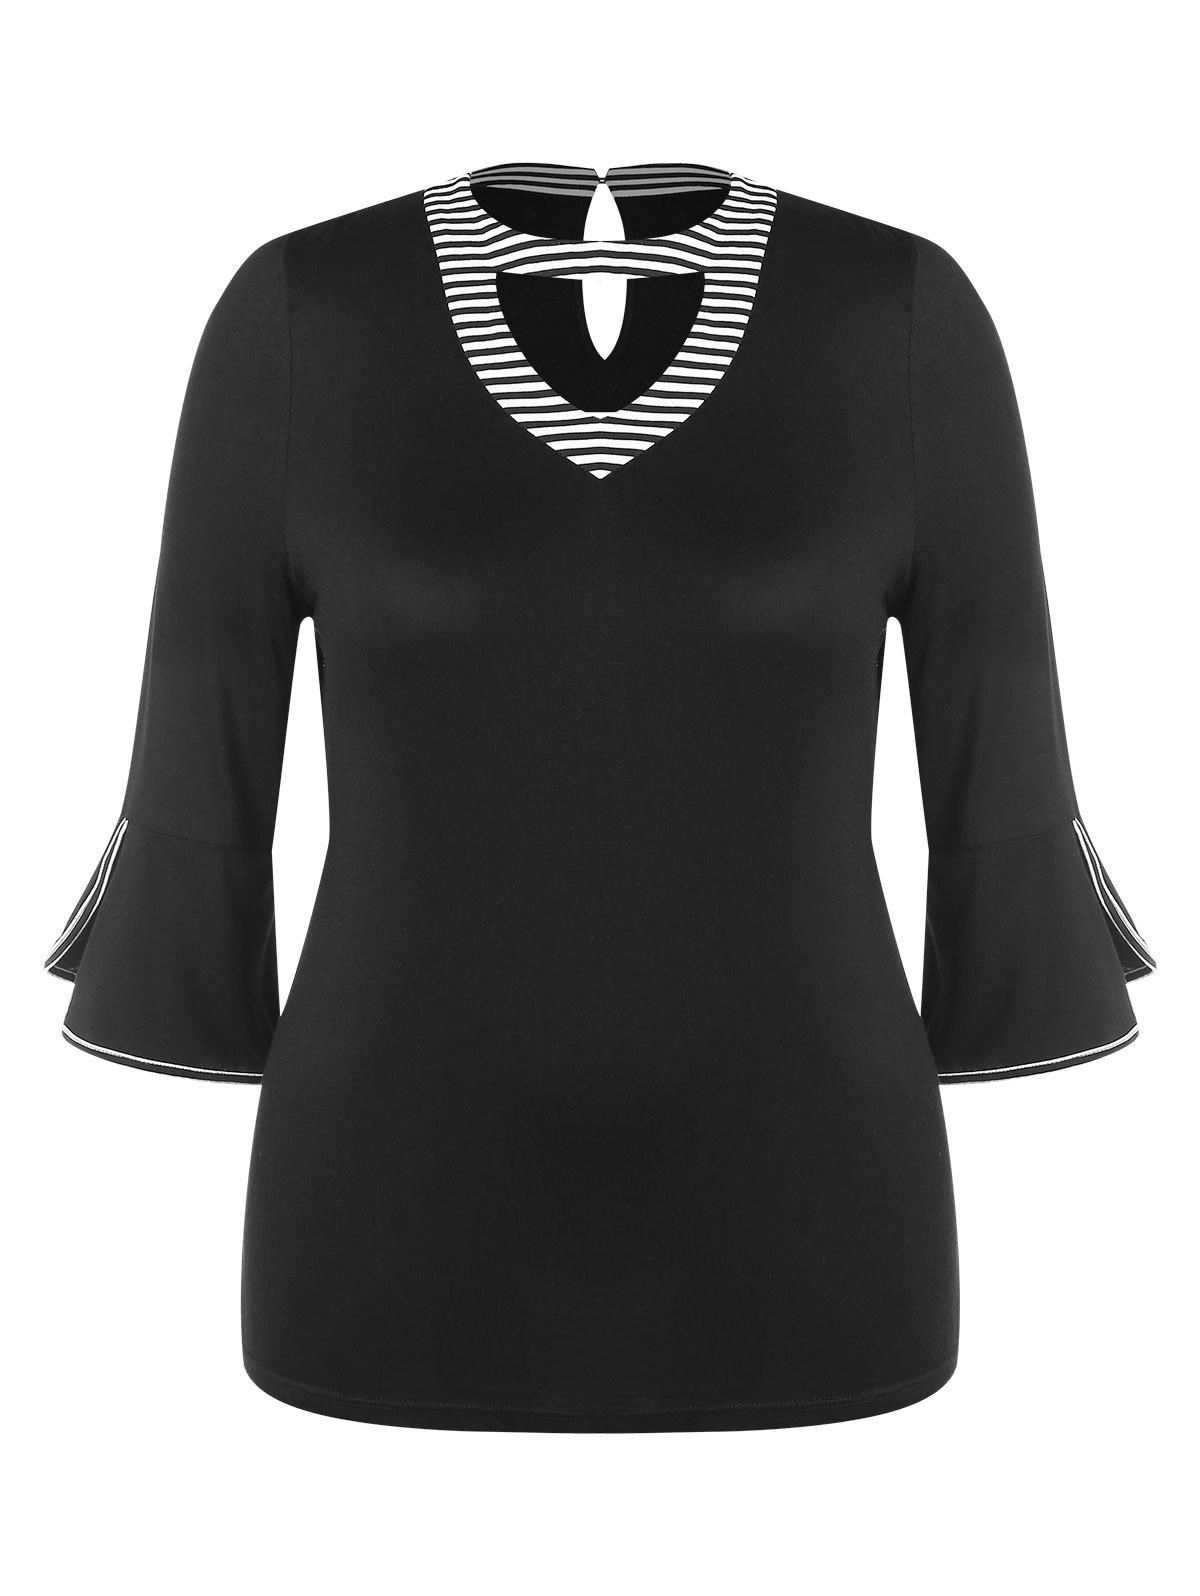 Contrast Cutout Neck Plus Size Bell Cuff Tee